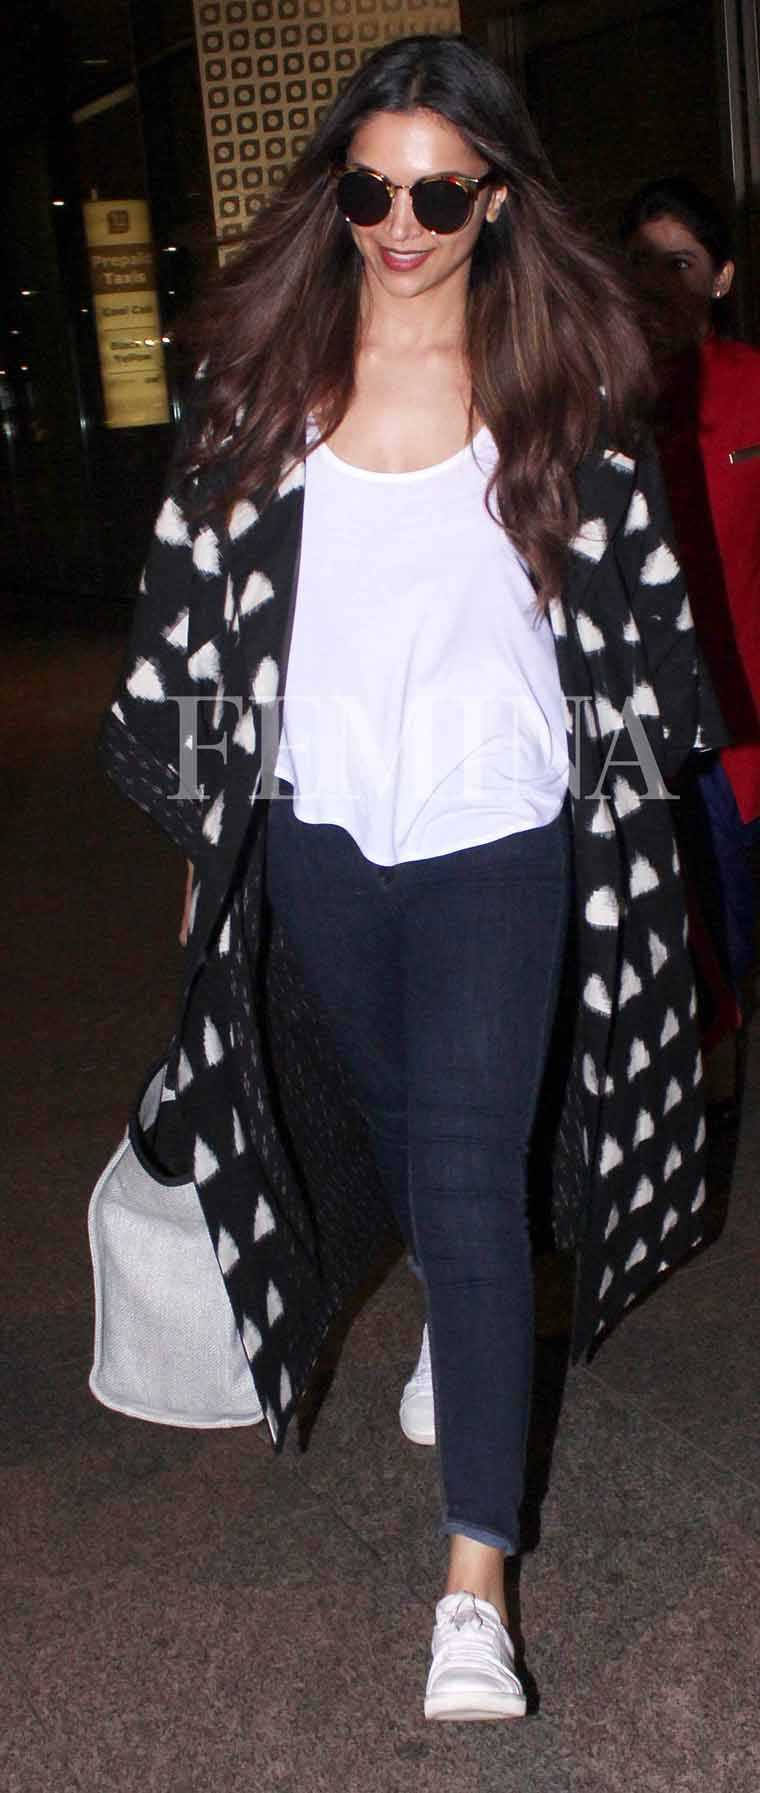 A long monochrome jacket from Chola elevated Deepika Padukone's travel uniform comprising skinny jeans, a tee and white sneakers. Her trusty Chanel tote and a pair of cat-eye sunglasses keep her company.